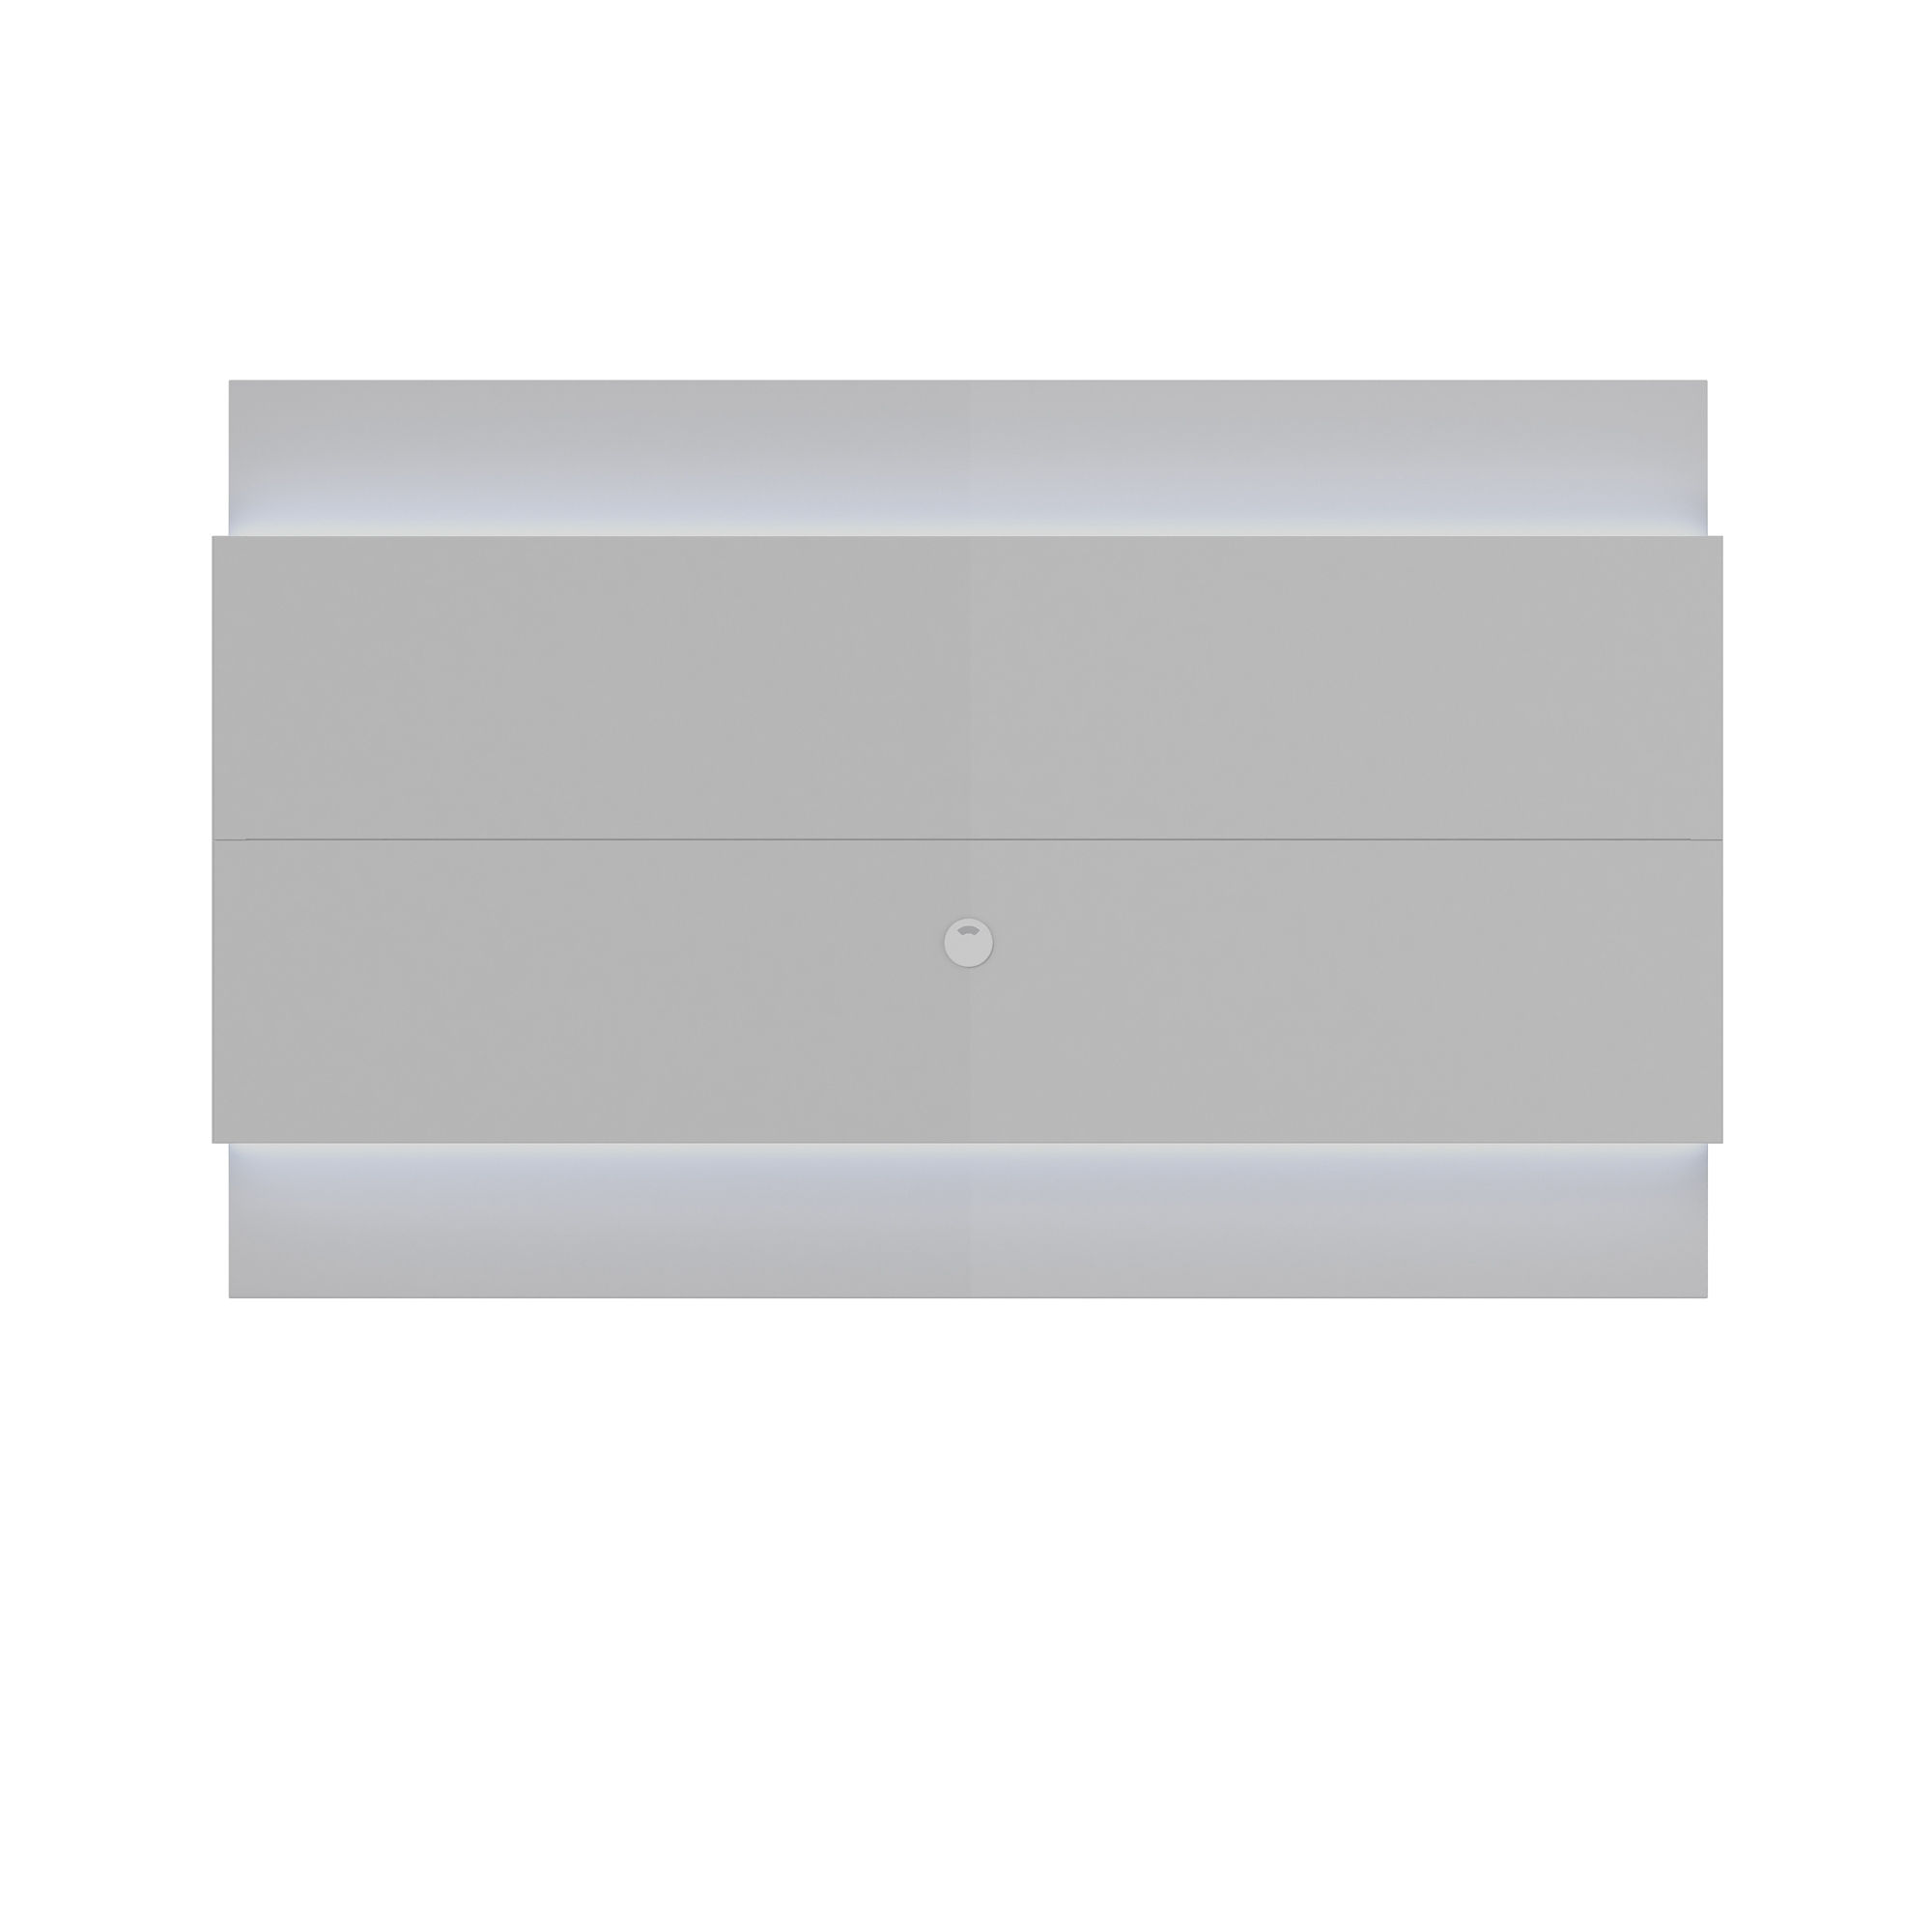 Ocean Tailer White Gloss Floating Wall Tv Panel 22 With Led Lights